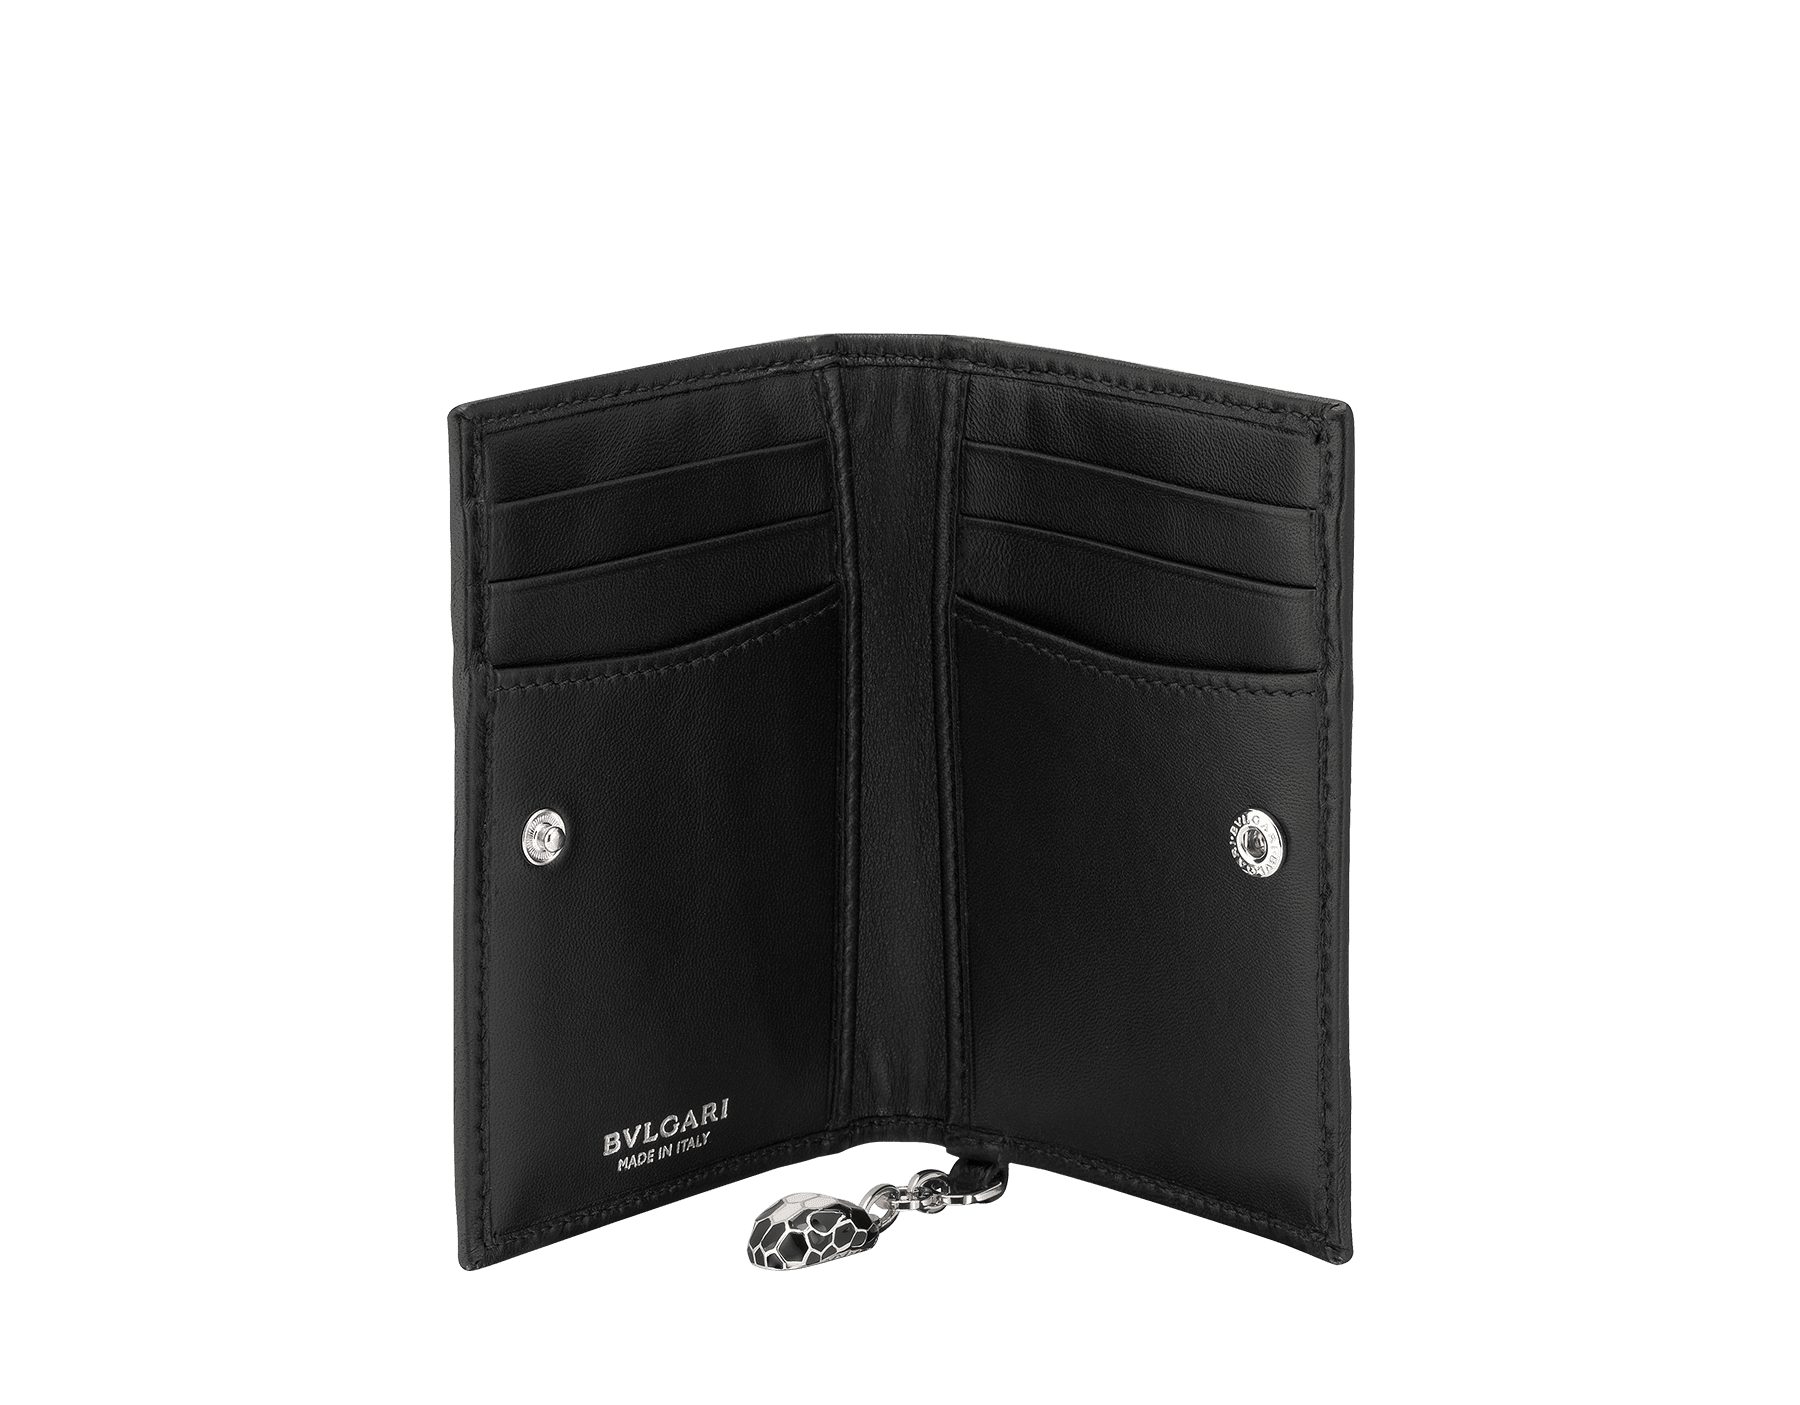 Serpenti Diamond Blast folded credit card holder in black quilted nappa leather. Iconic snakehead charm in black and white enamel, with black enamel eyes. 287578 image 2